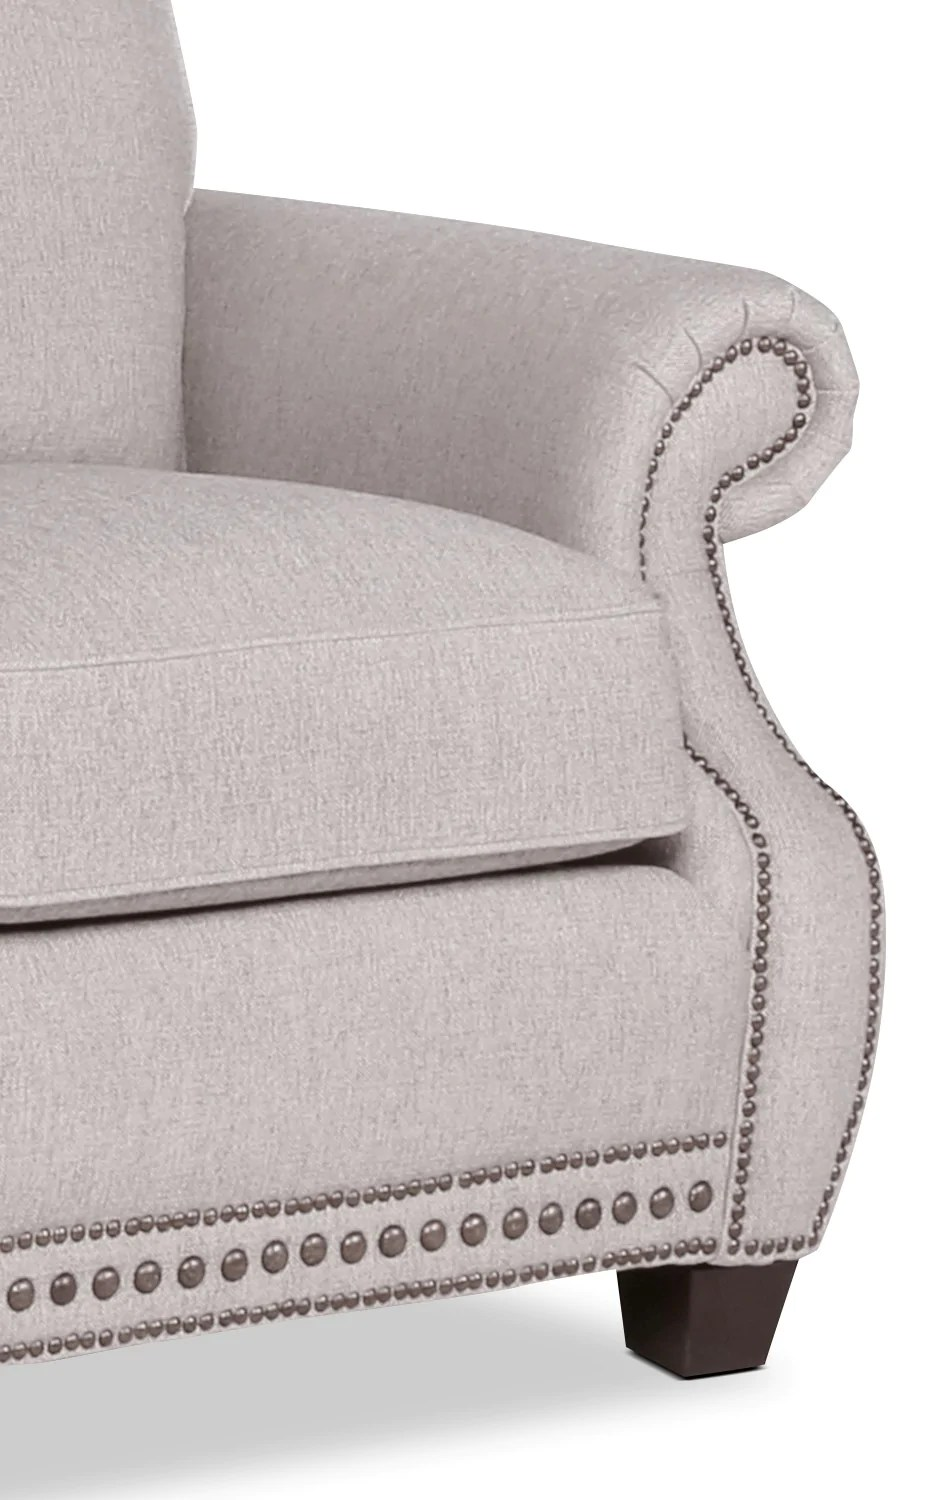 8 way hand tied sofa brands in canada leather chesterfield haden linen look fabric grey the brick previous next